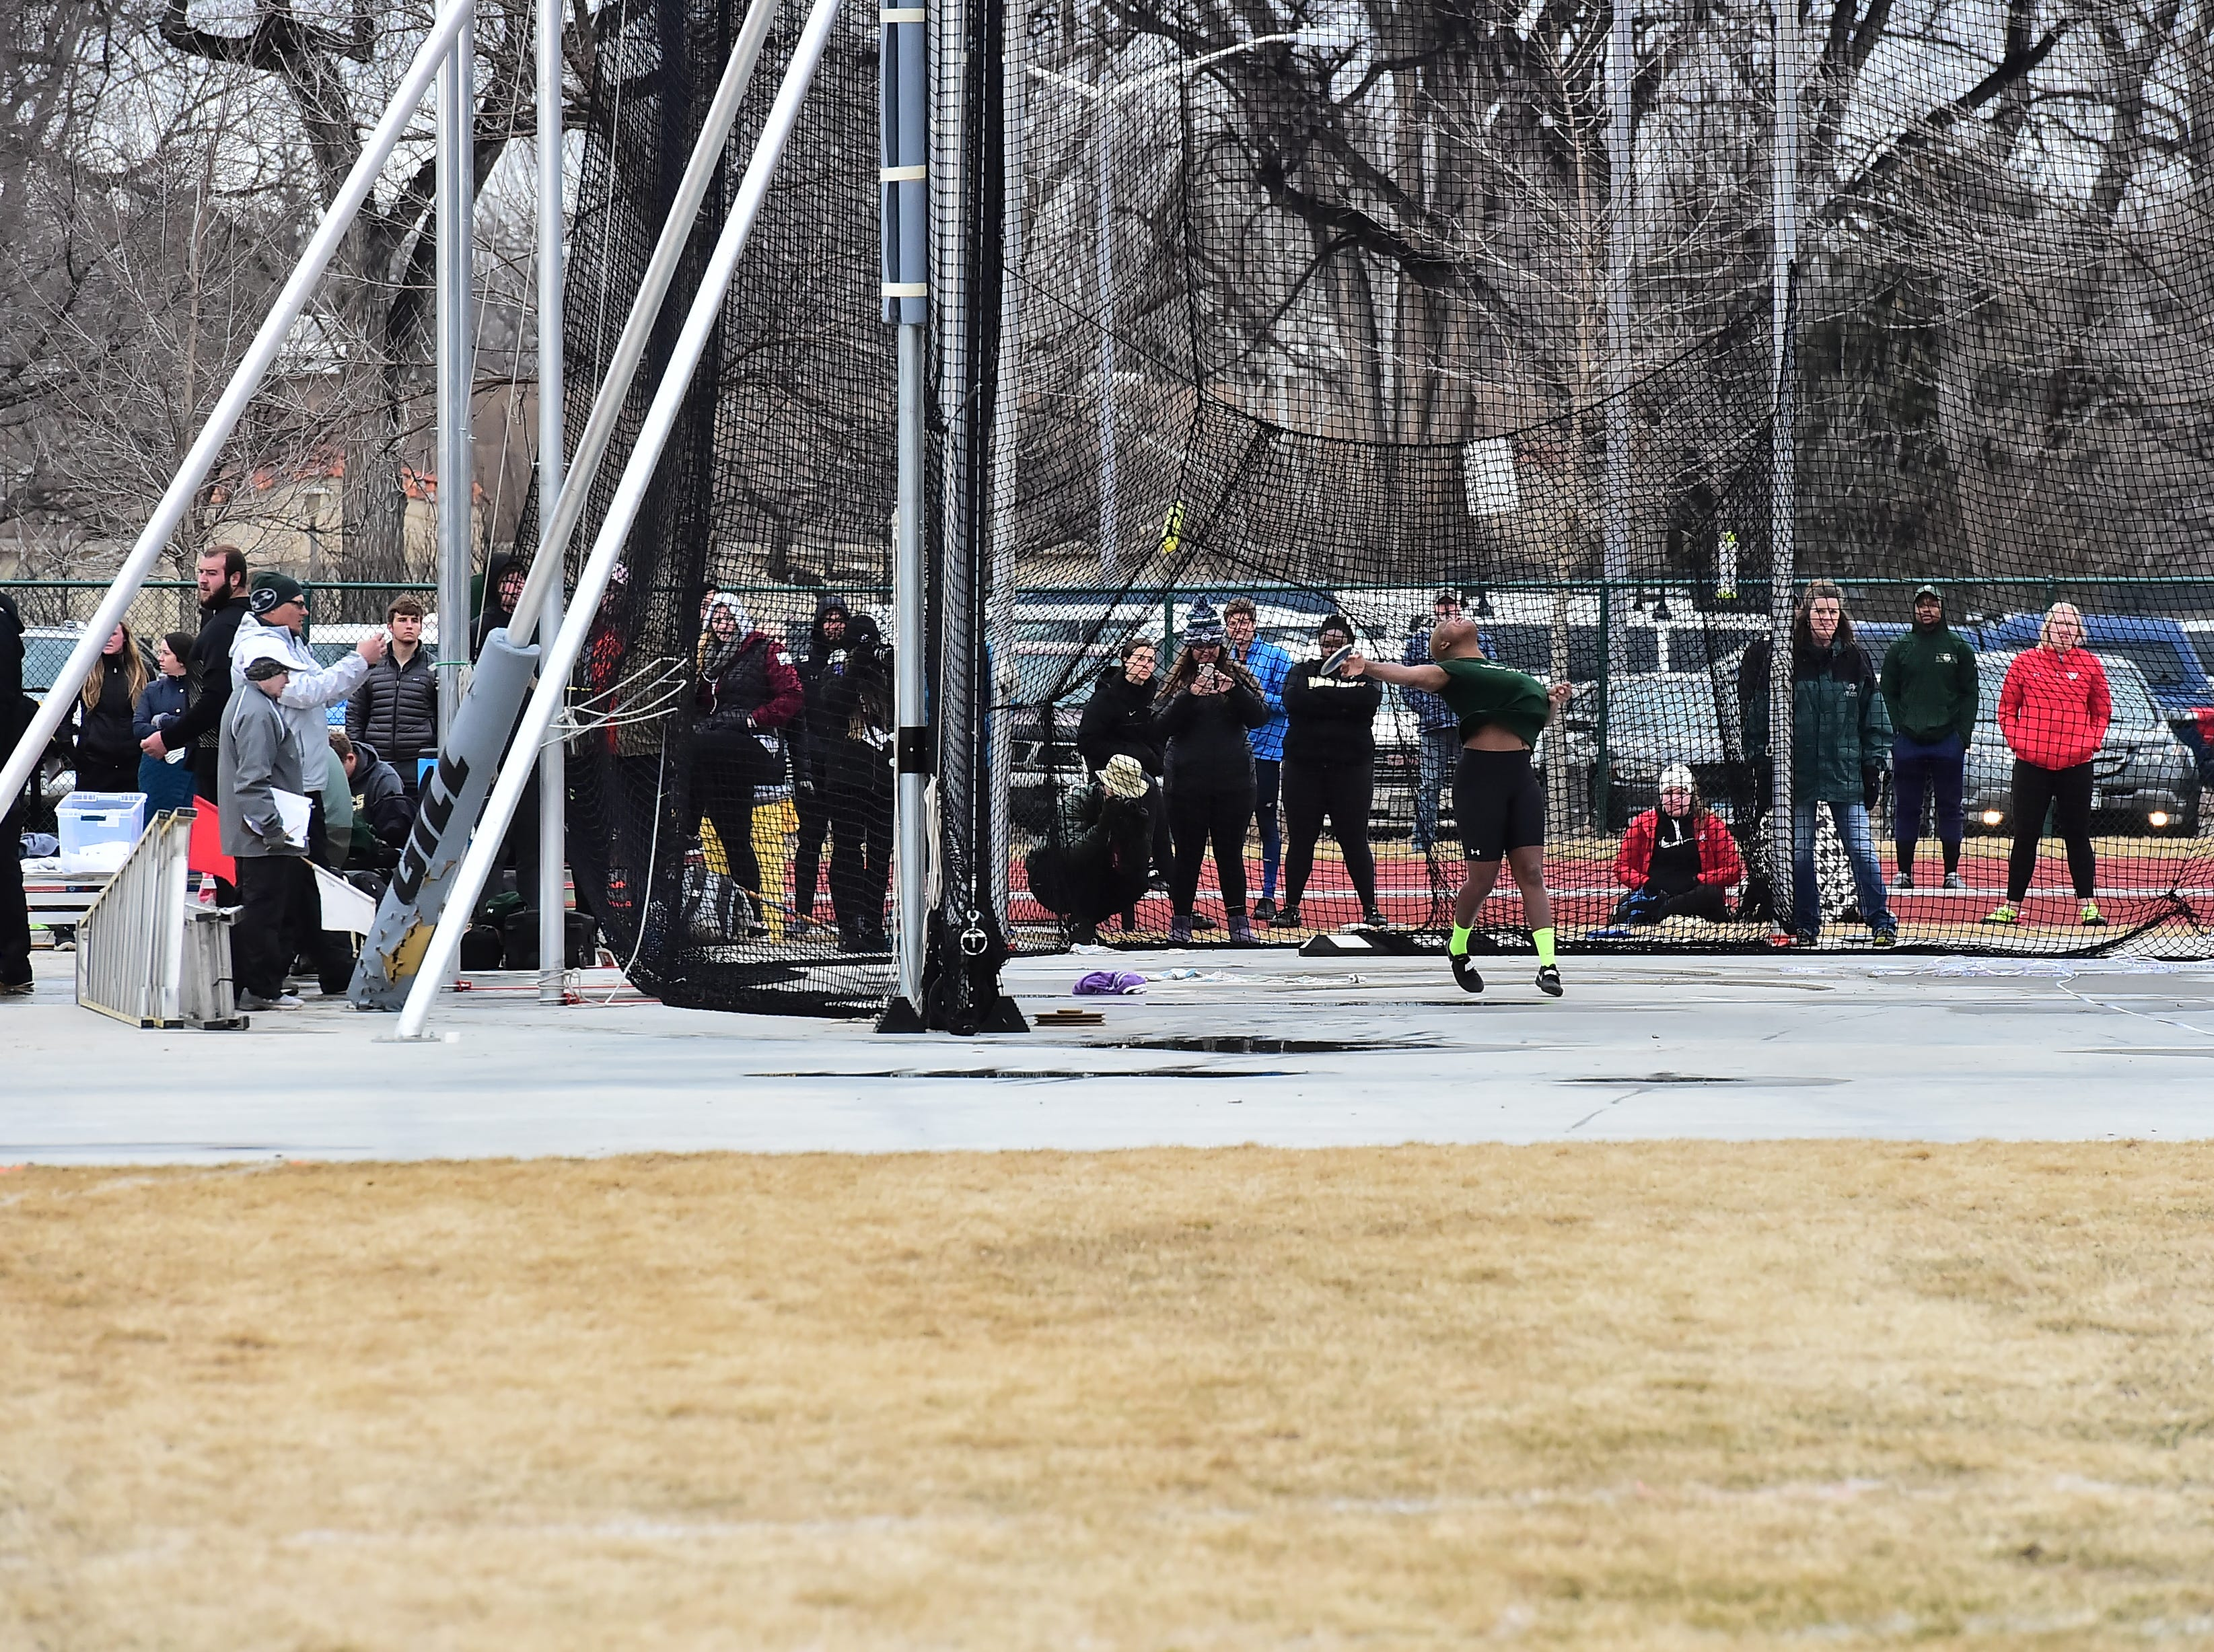 CSU's Shadae Lawrence, a transfer from Kansas State and the defending champion in the women's discus, throws from the new ring at Colorado State University's renovated Jack Christiansen Track during the Fum McGraw Open on March 23, 2019.